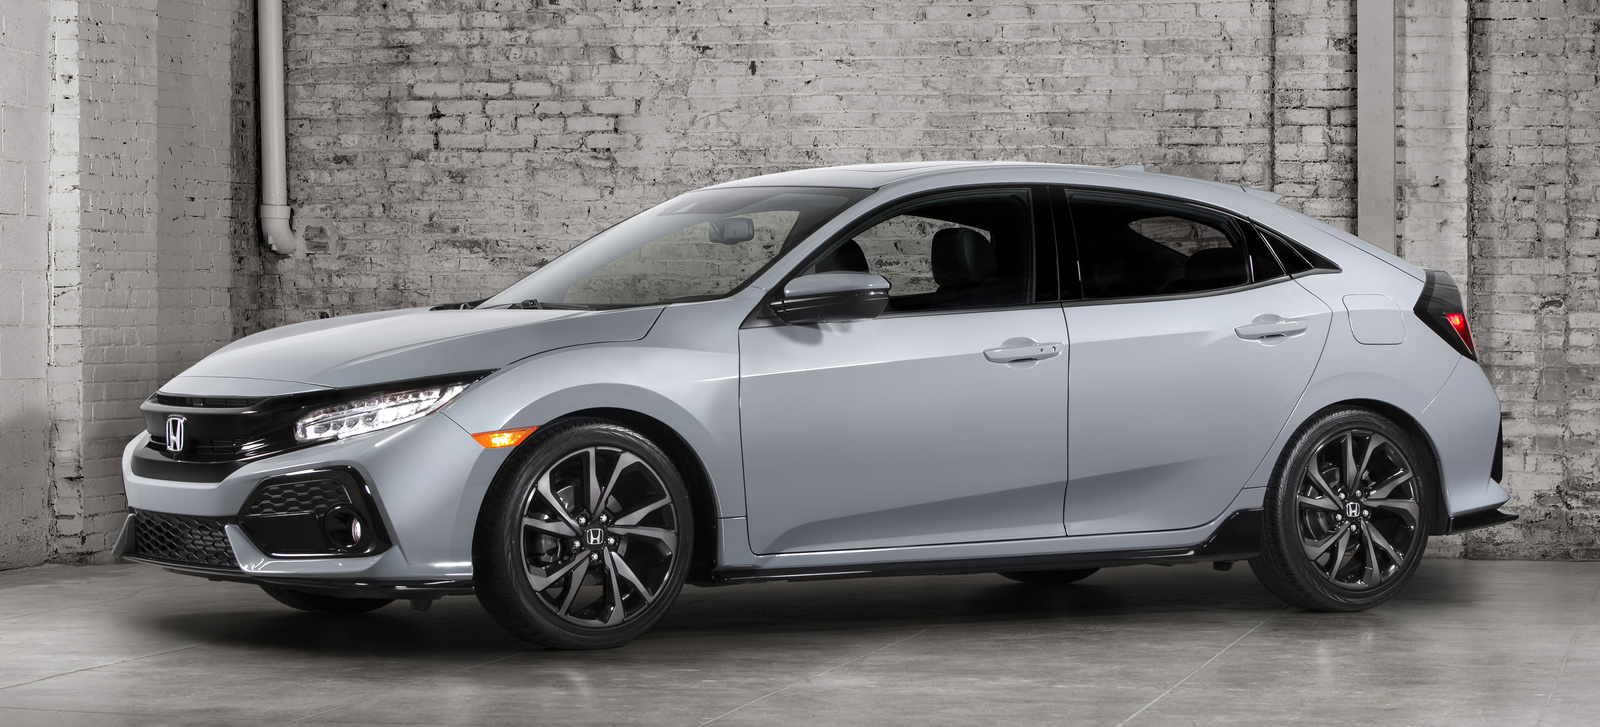 Honda Reading Ma 2017 Honda Civic Hatchback For Sale In Boston Ma Cargurus